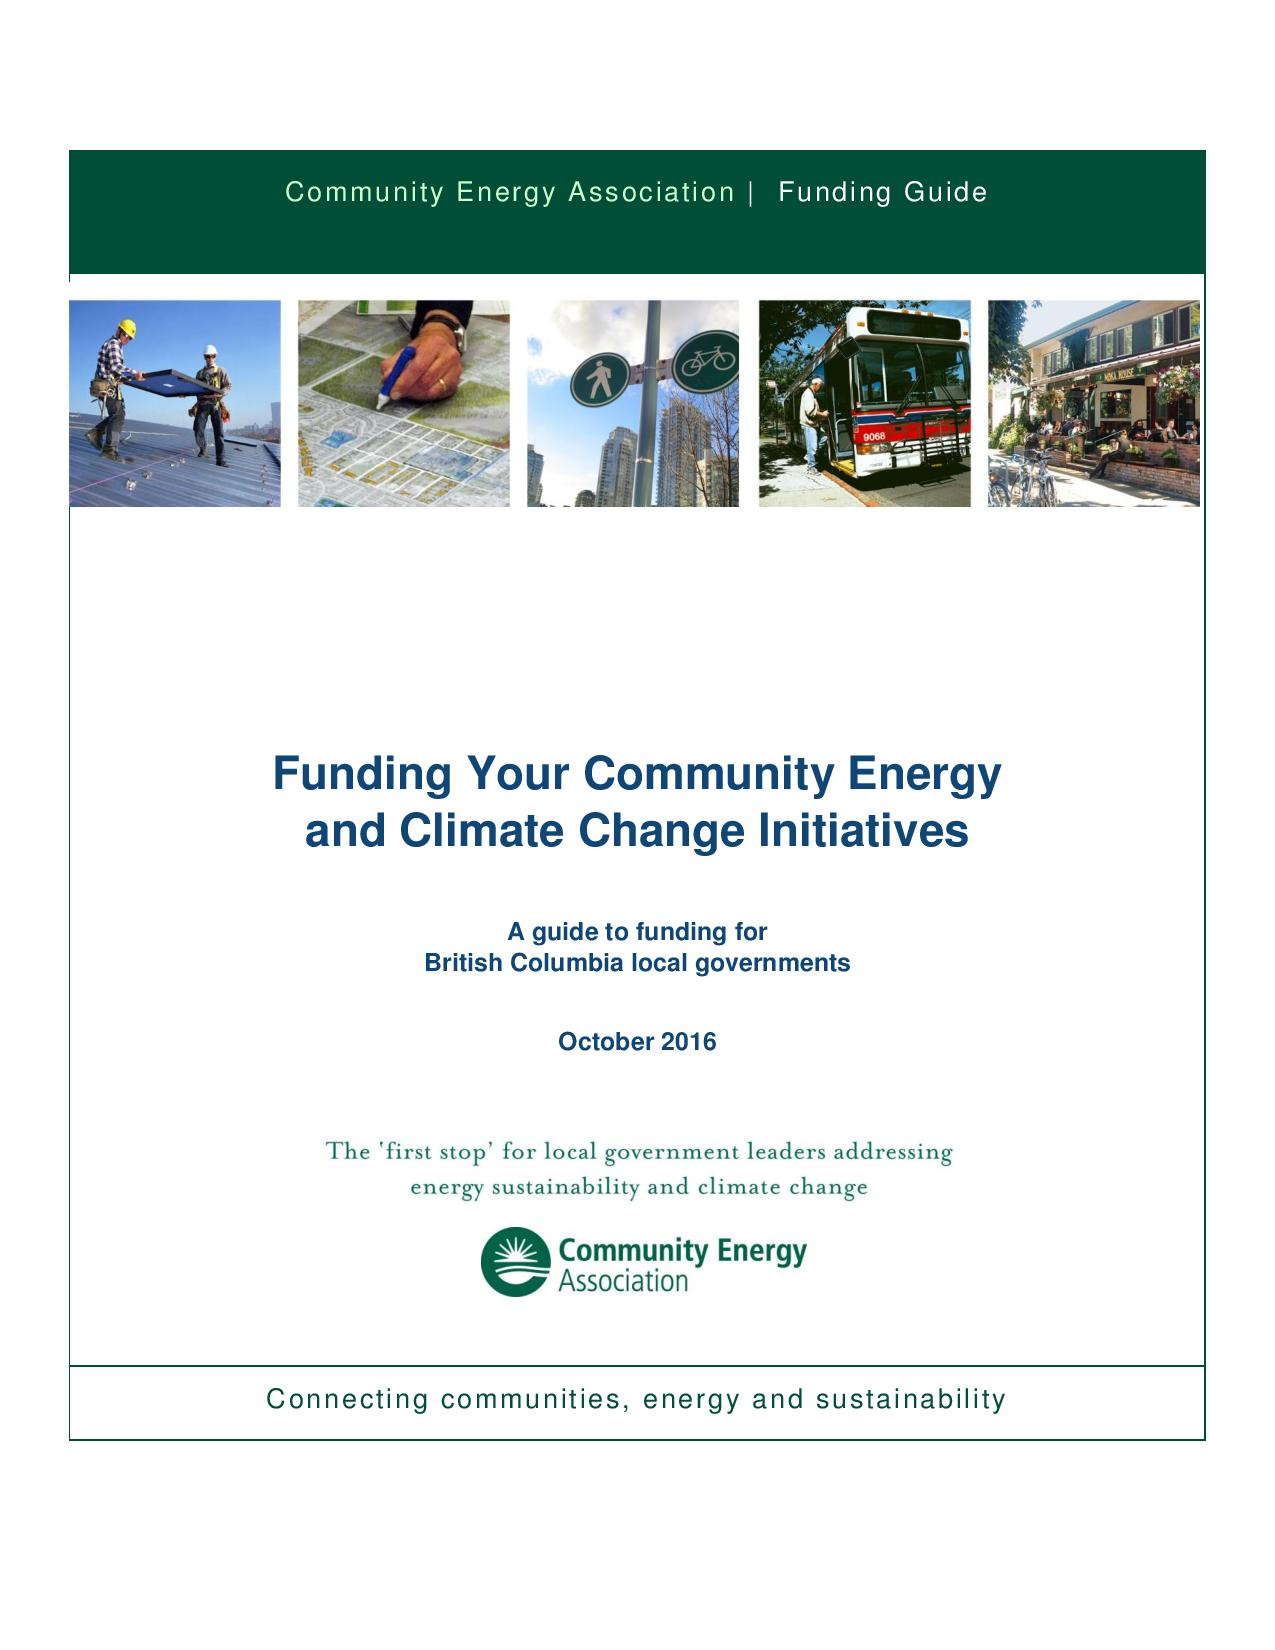 bc-funding-guide-2016-cover-page